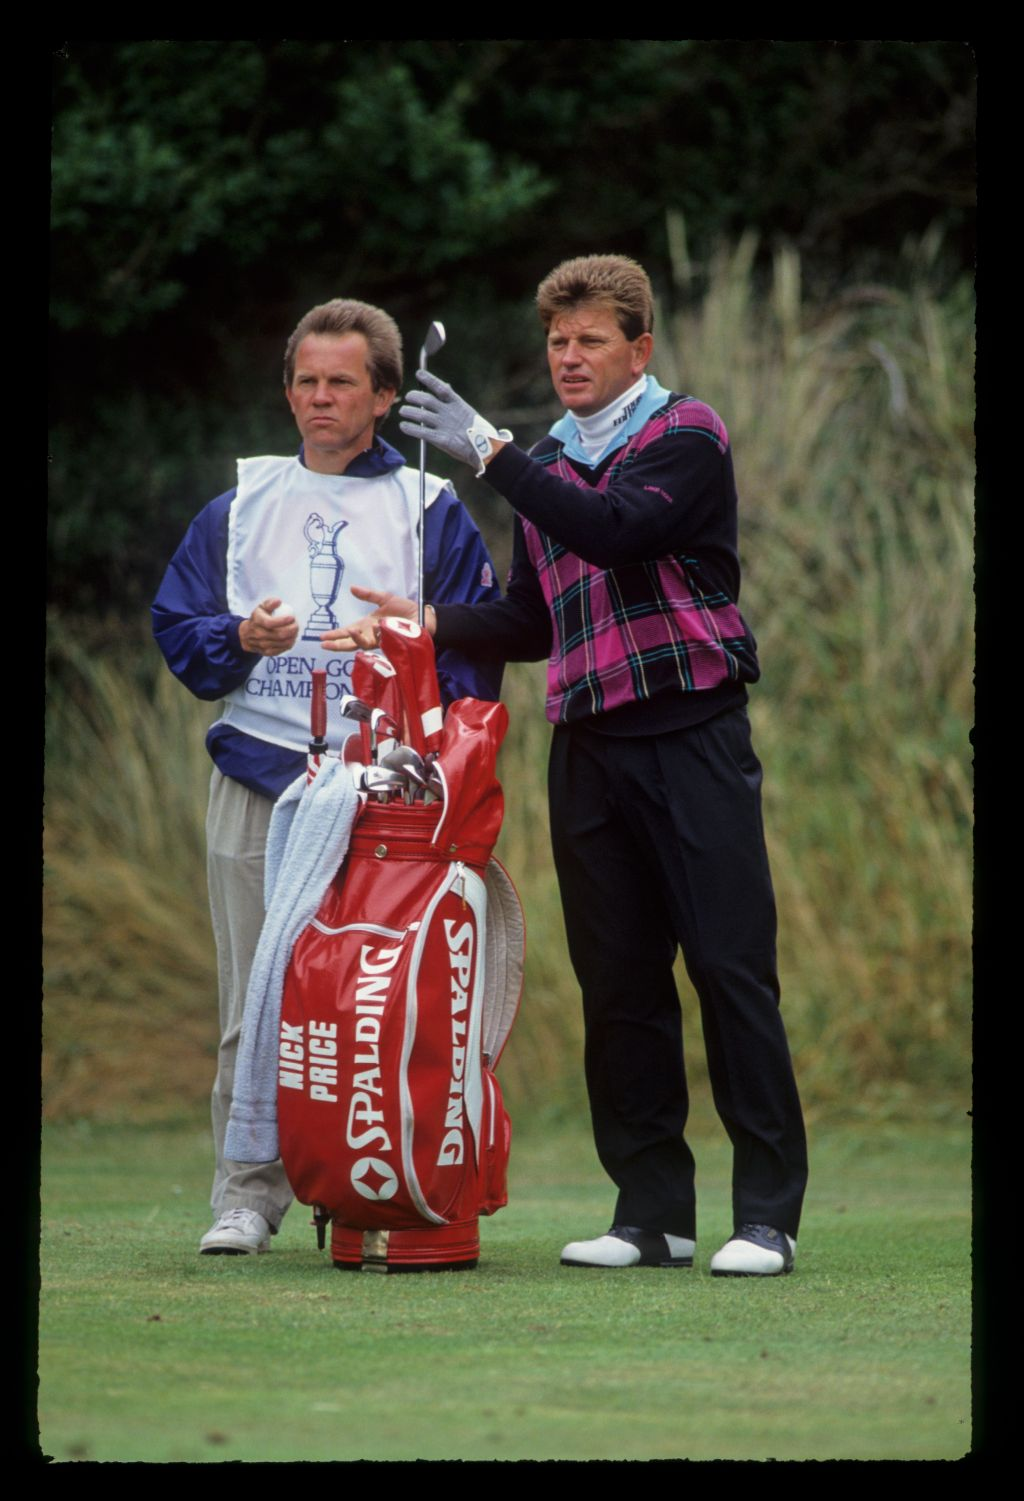 Nick Price and his caddie considering their options on the tee during the 1991 Open Championship